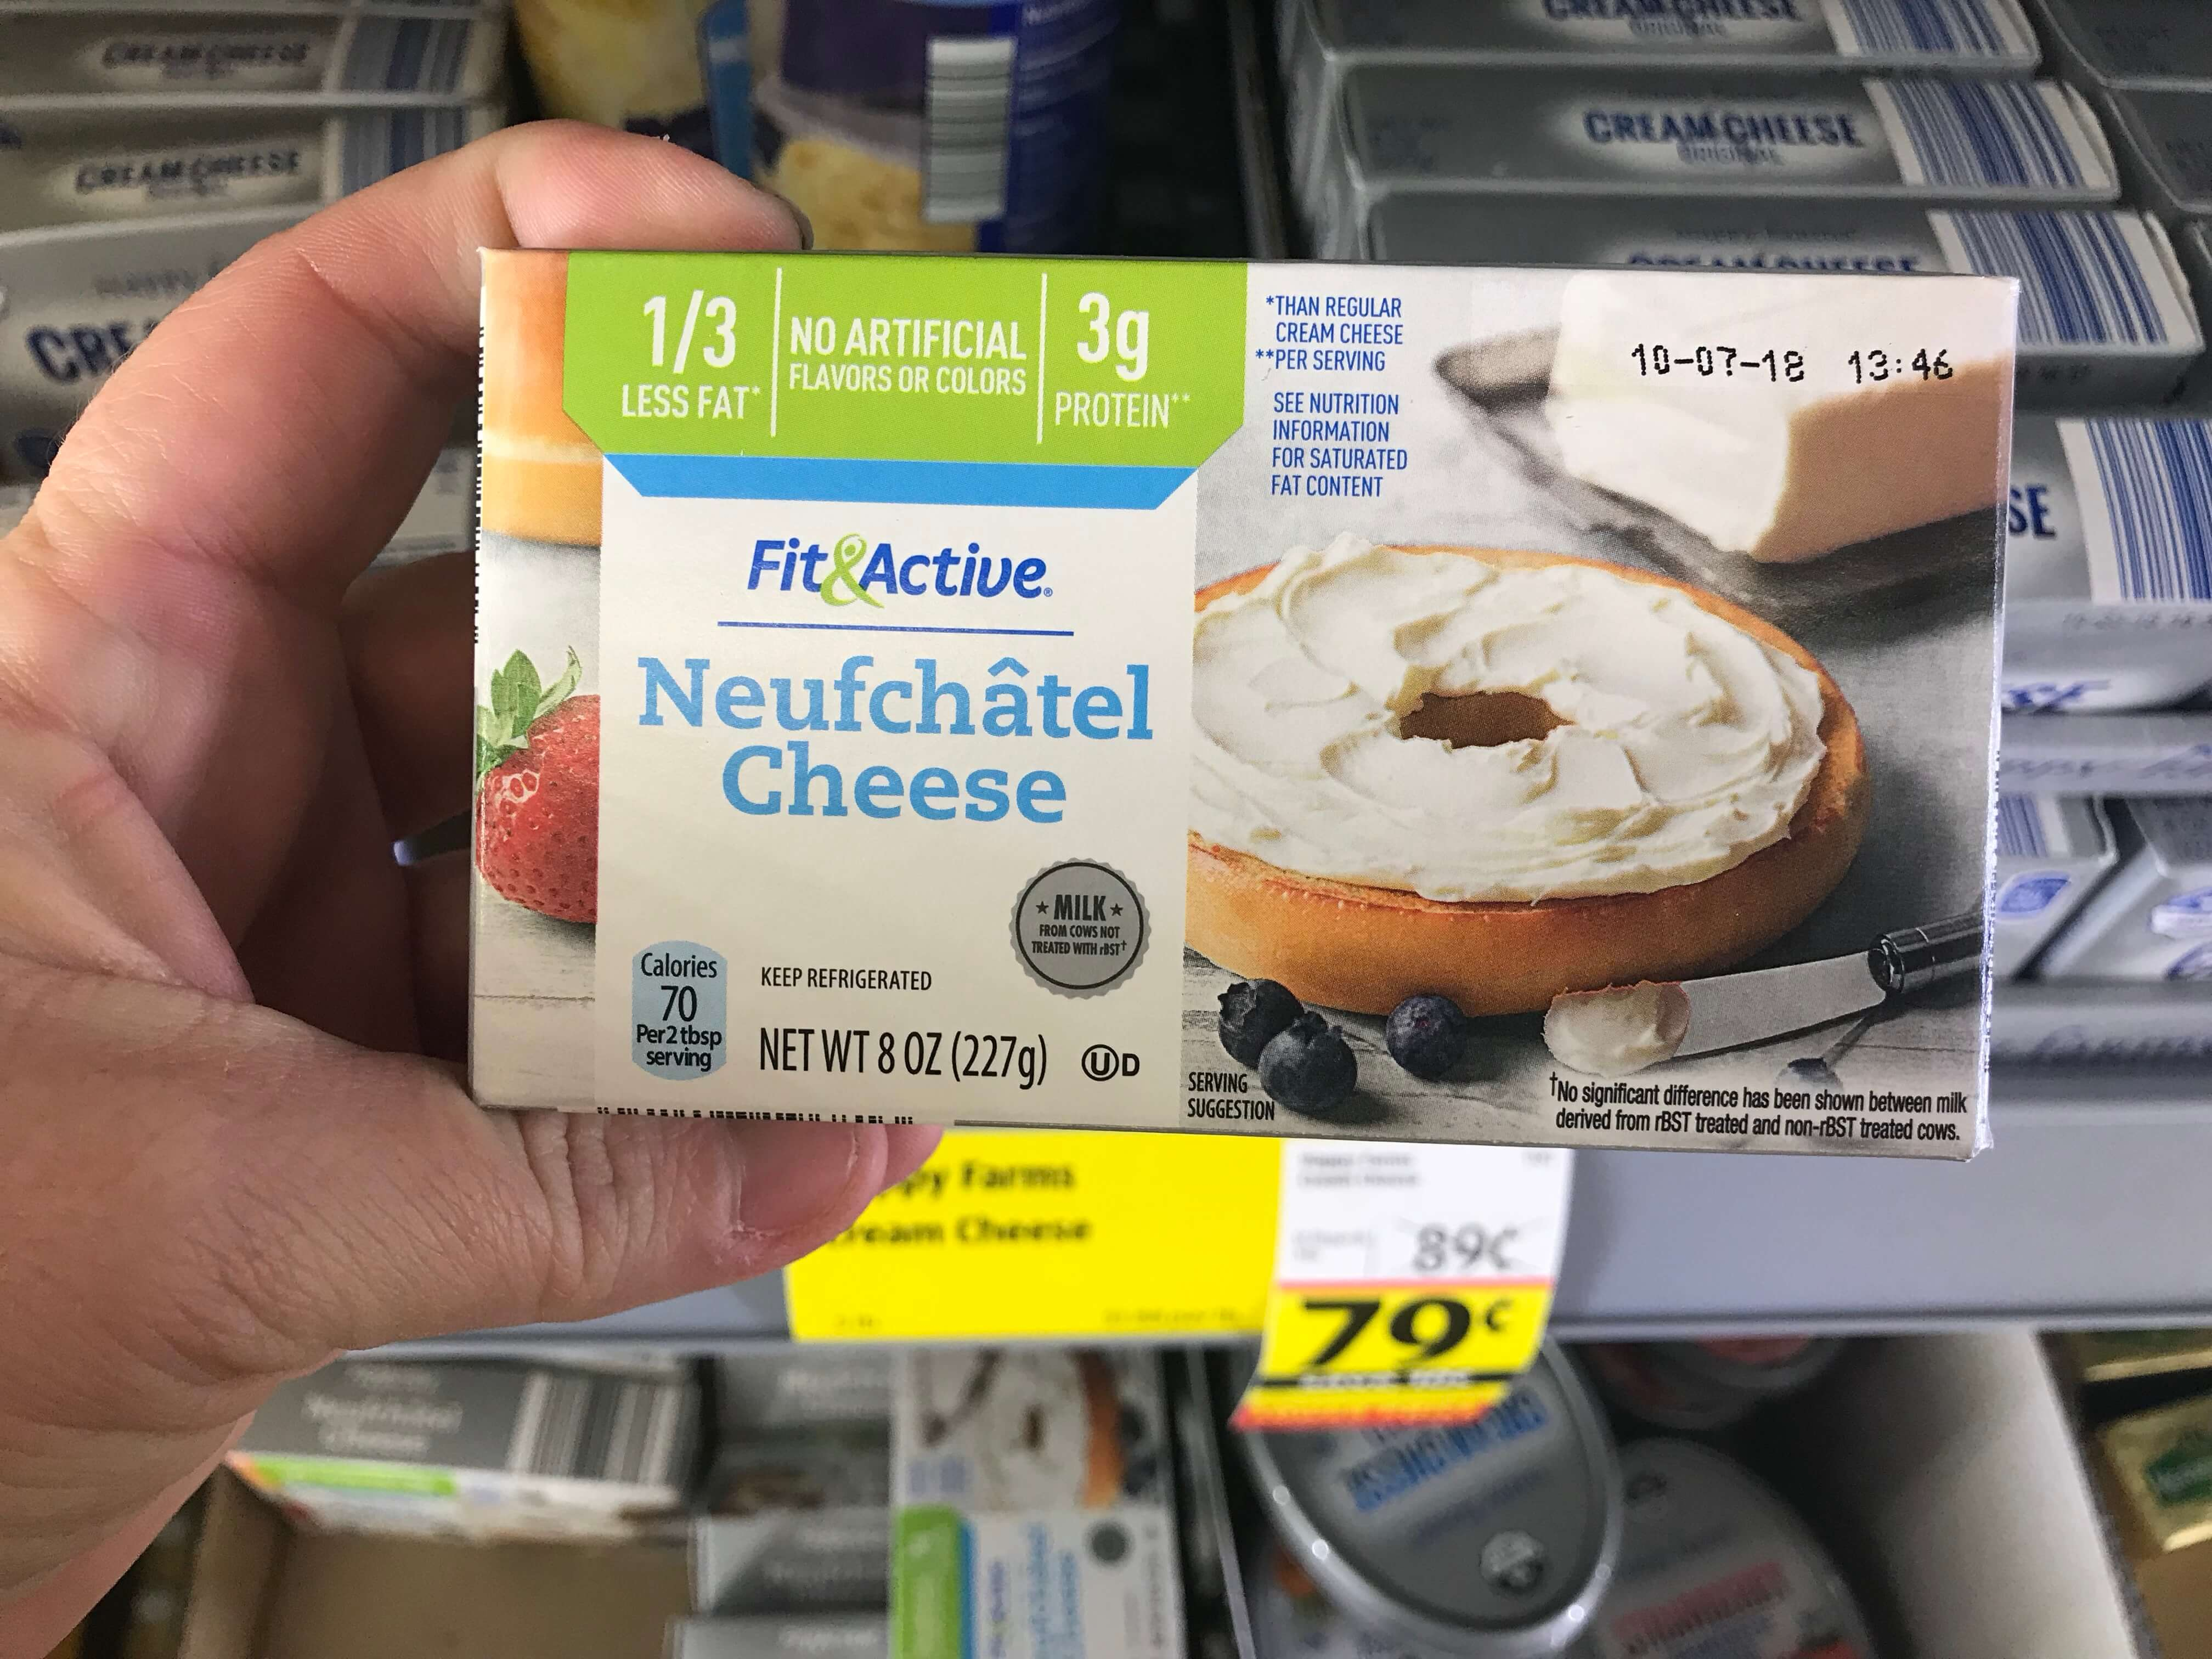 Happy Farms Cream Cheese or Fit & Active Neufchatel $0 79 at